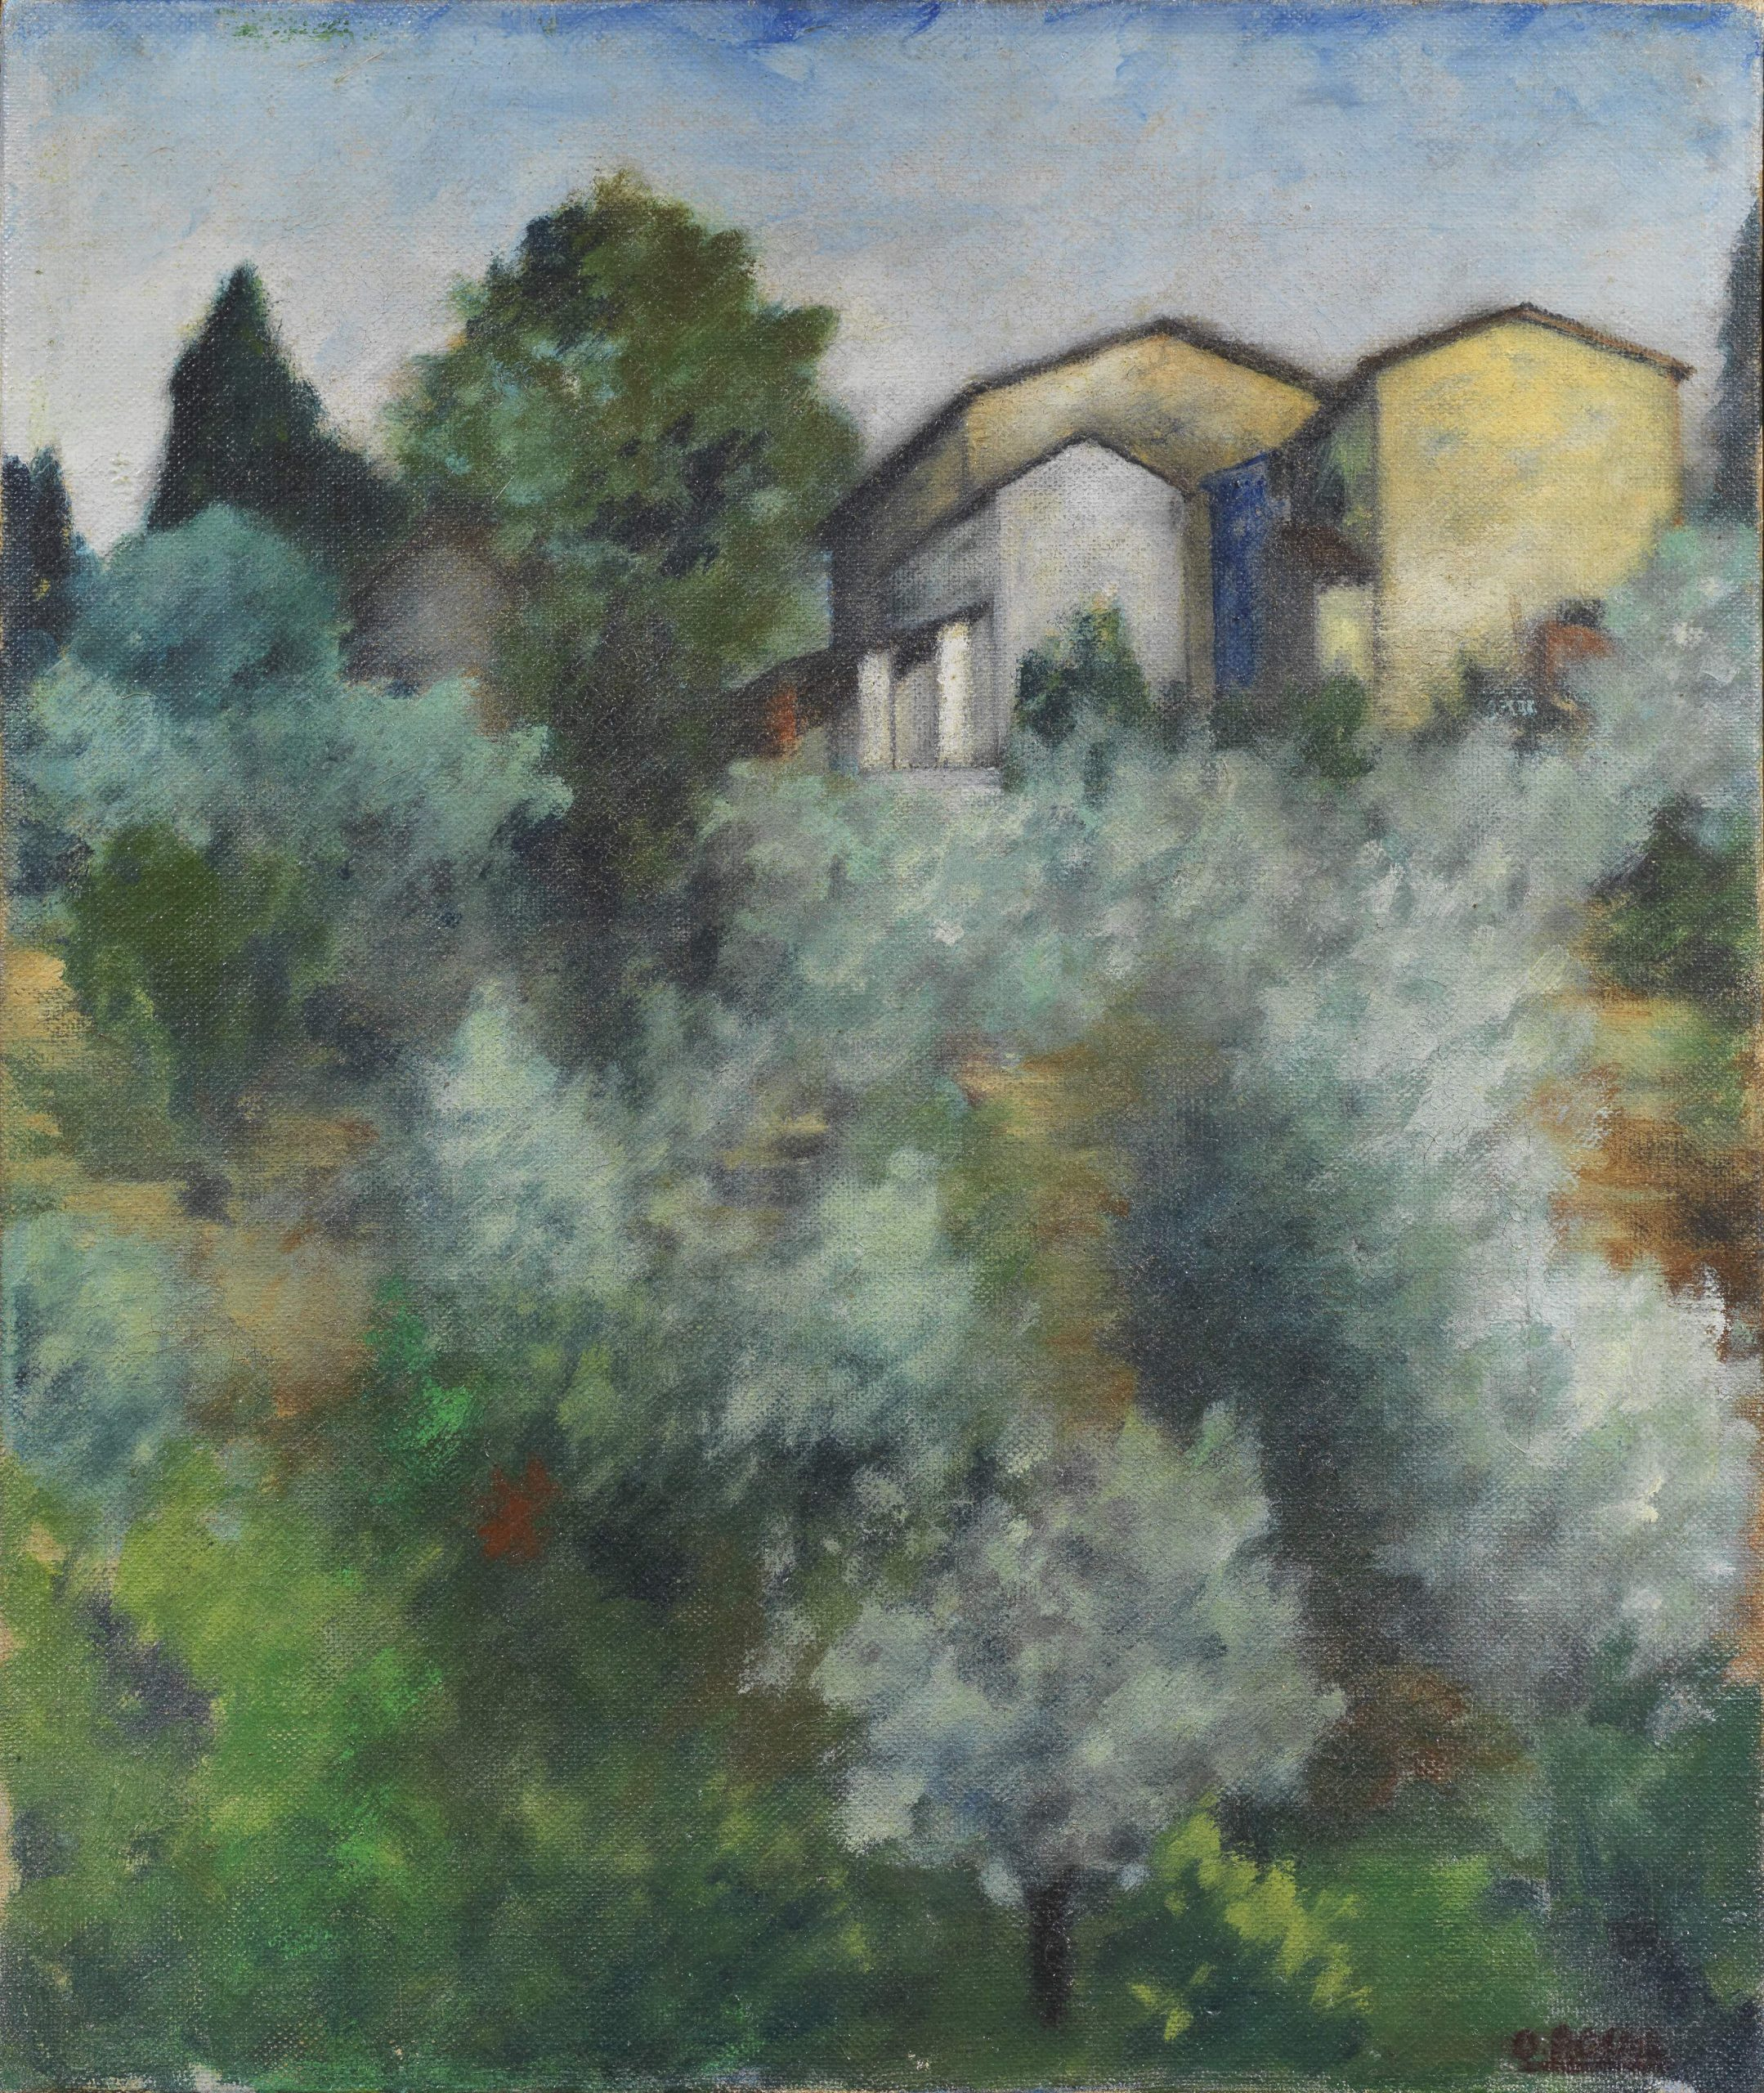 Ottone Rosai, Collina di ulivi, 1922, oil on canvas, 46x38 cm